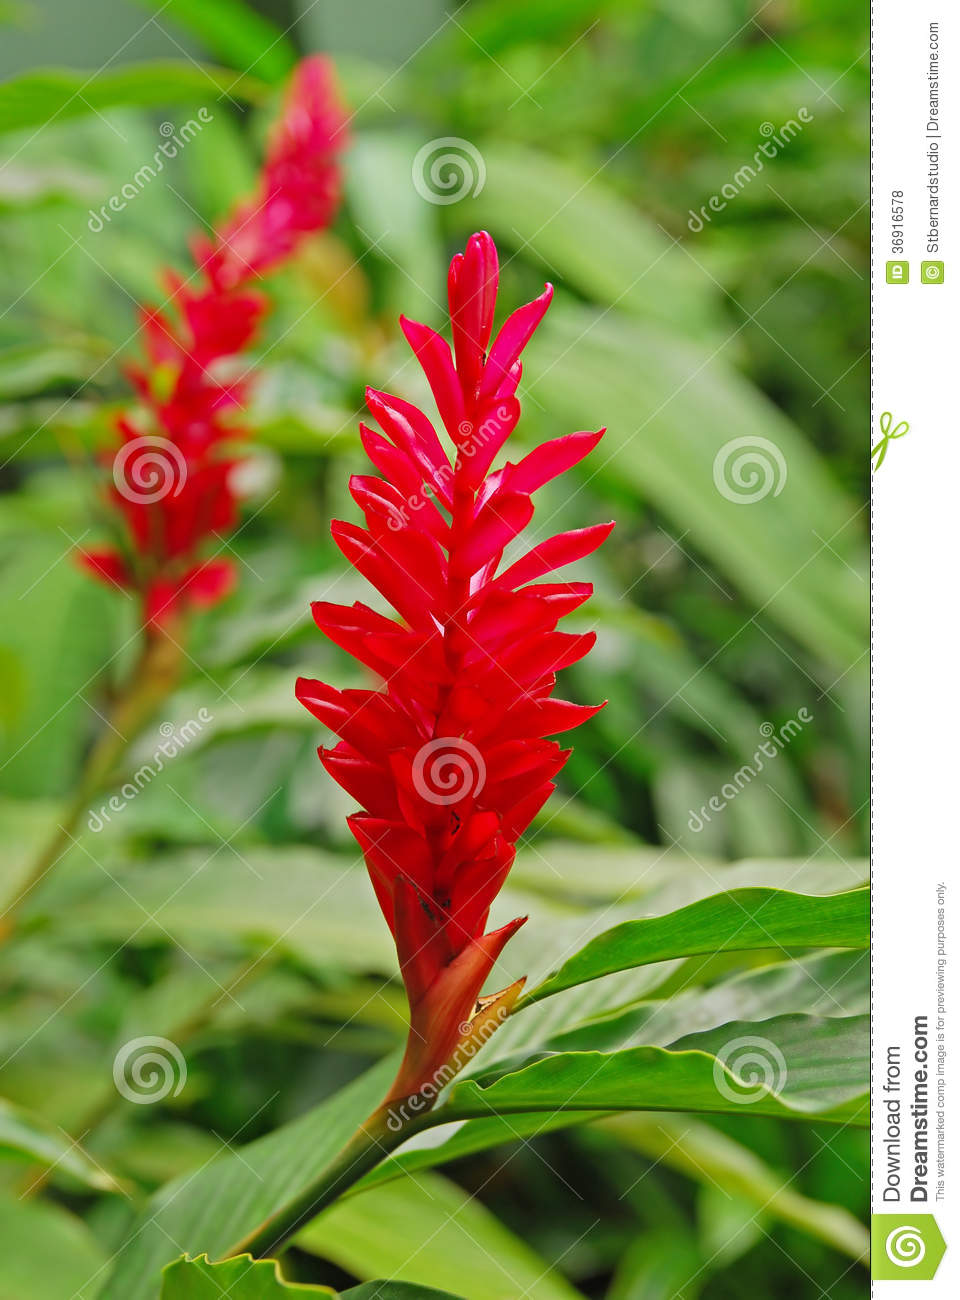 Beautiful flower of red ginger plant stock photo image of awapuhi download beautiful flower of red ginger plant stock photo image of awapuhi common izmirmasajfo